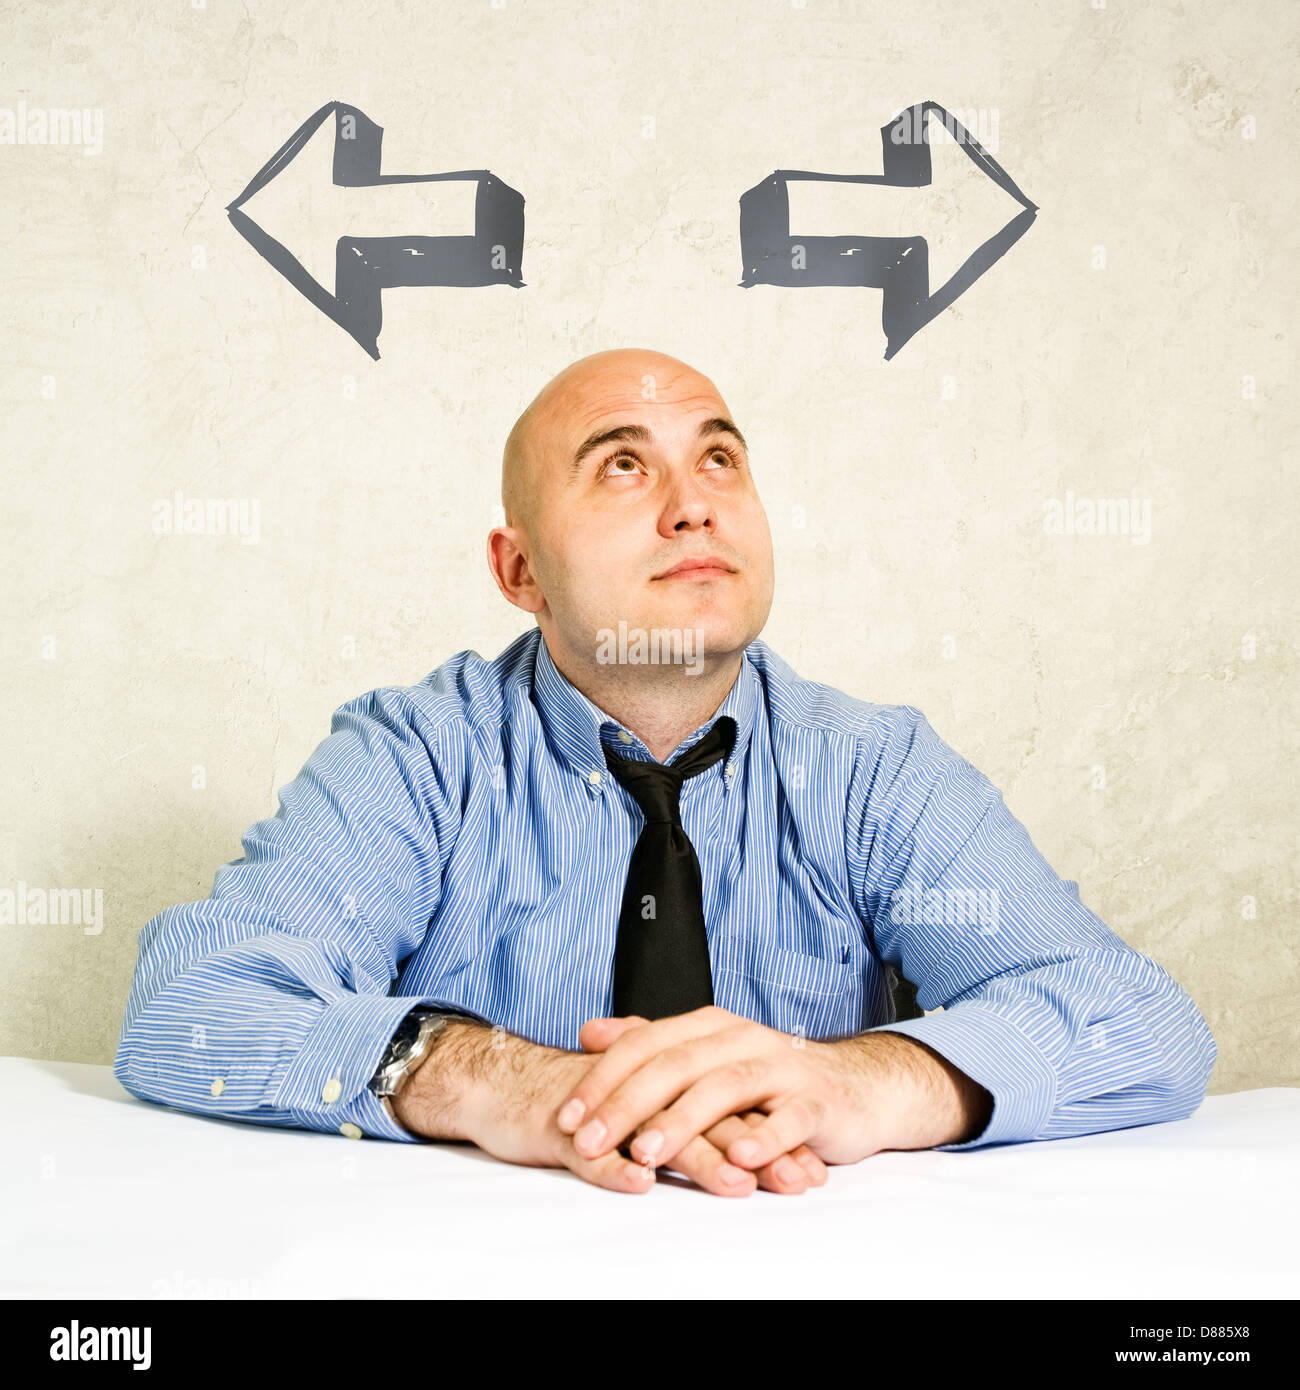 Business option. Businessman having two options, choosing between them. - Stock Image